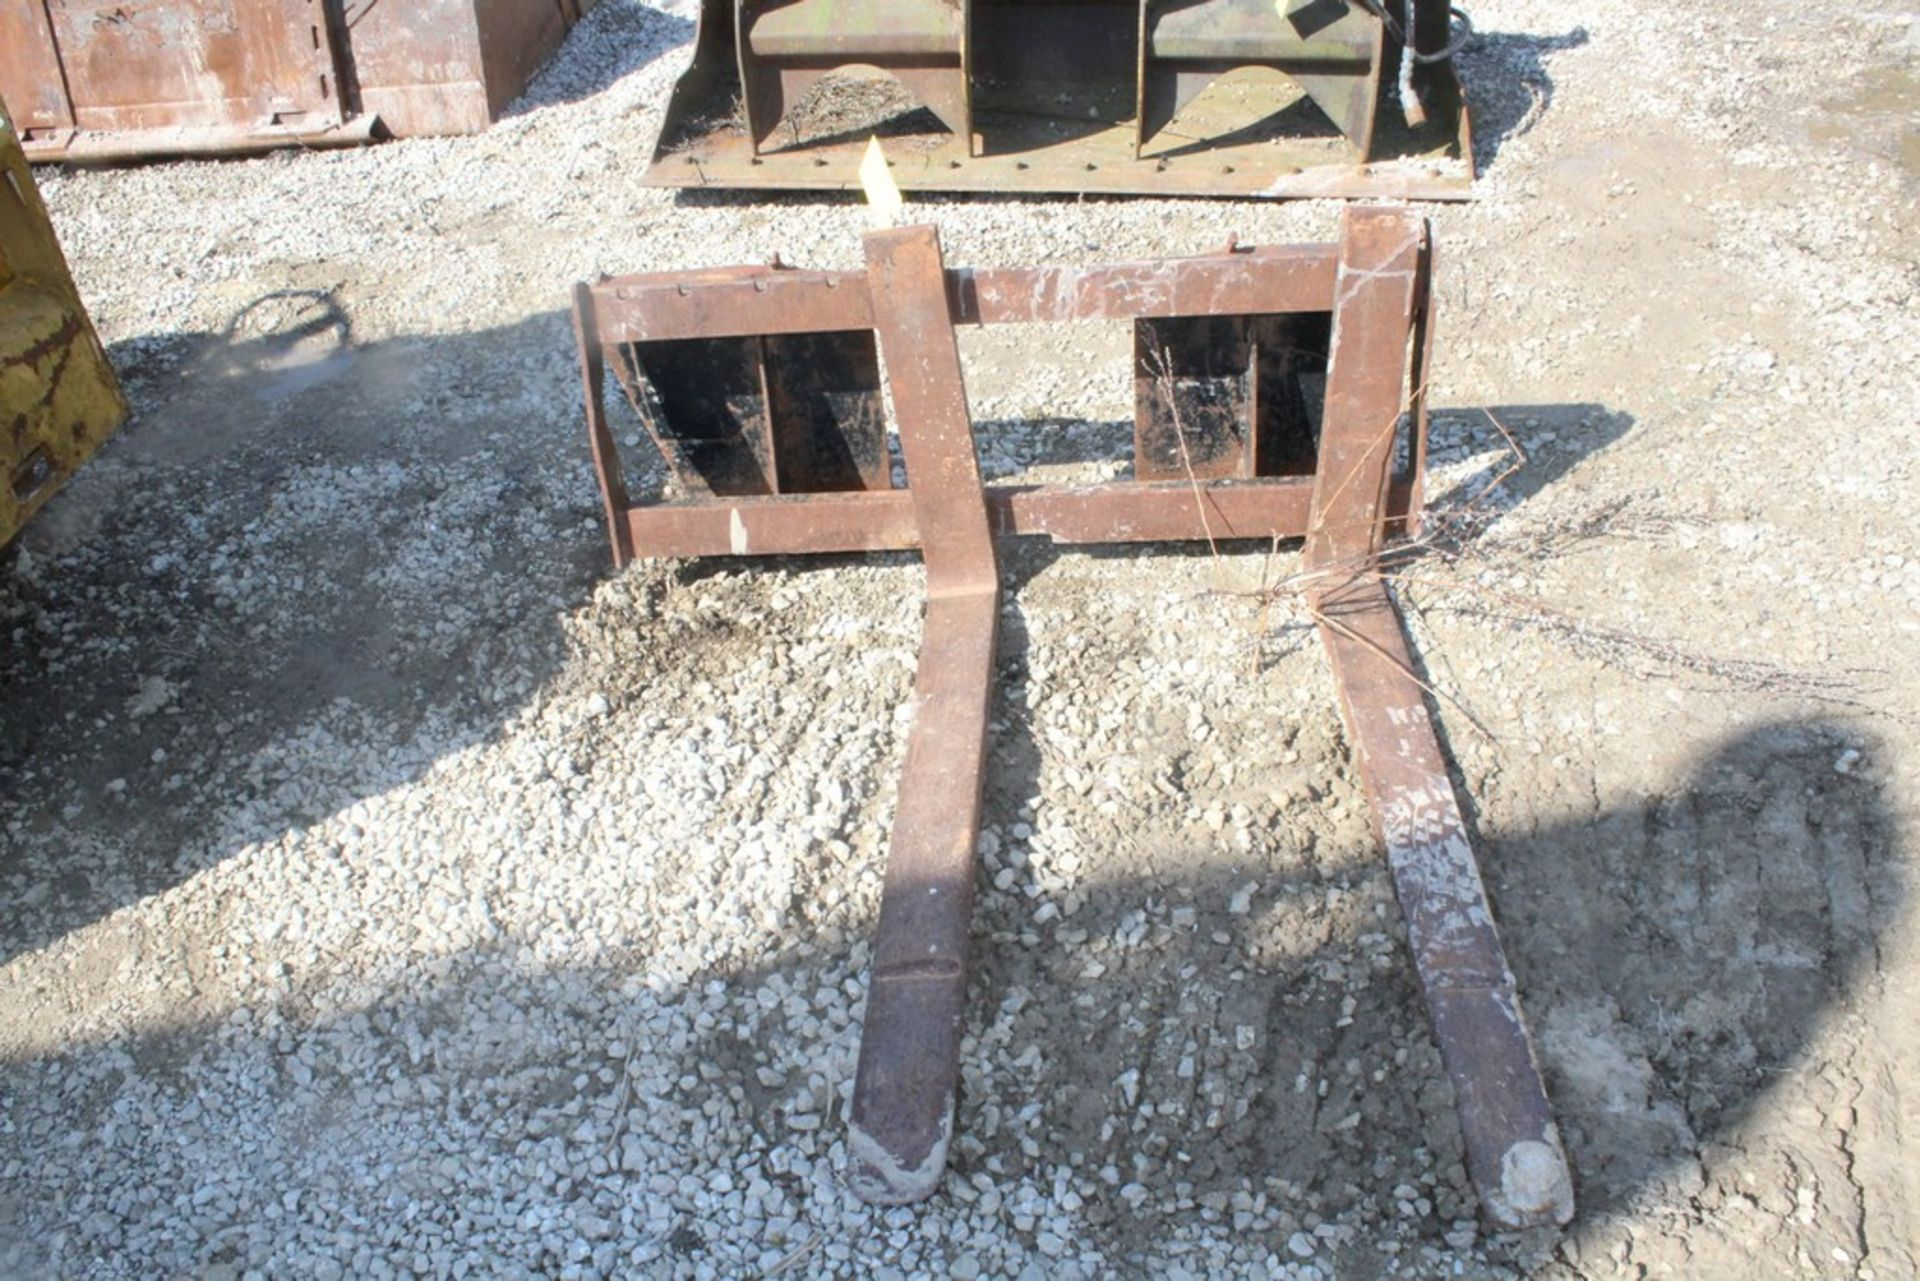 42-IN. FORK ATTACHMENT, 42-IN. FORKS, (1) BALL HITCH ON (1) FORK, TO IT SKID STEER LOADER - Image 3 of 4